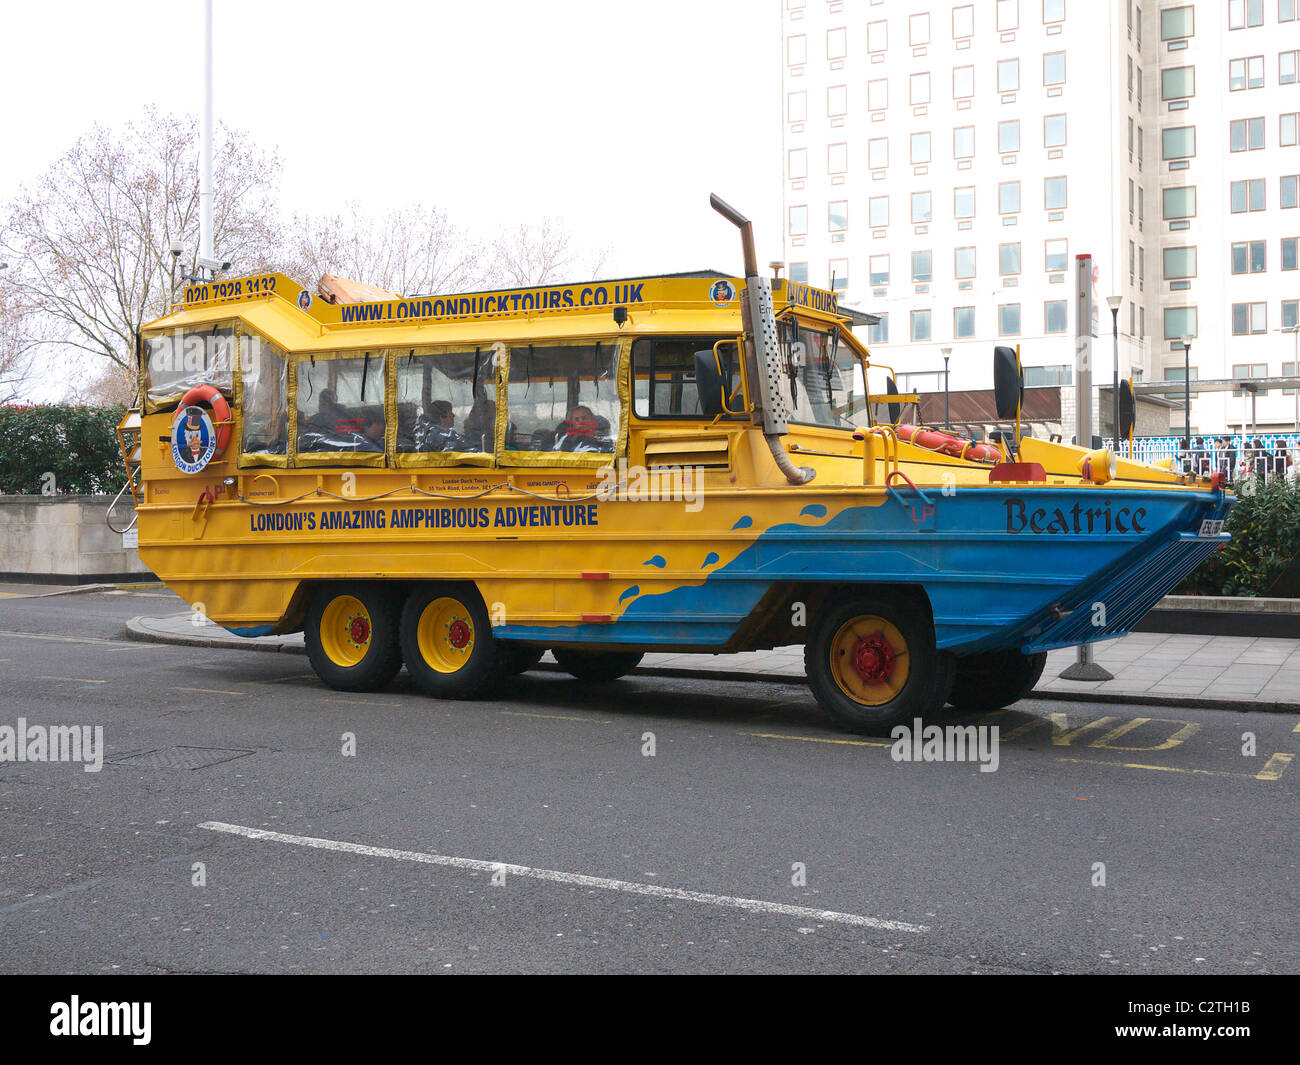 Side View Of One Of The Amphibious Dukw Vehicles Used For